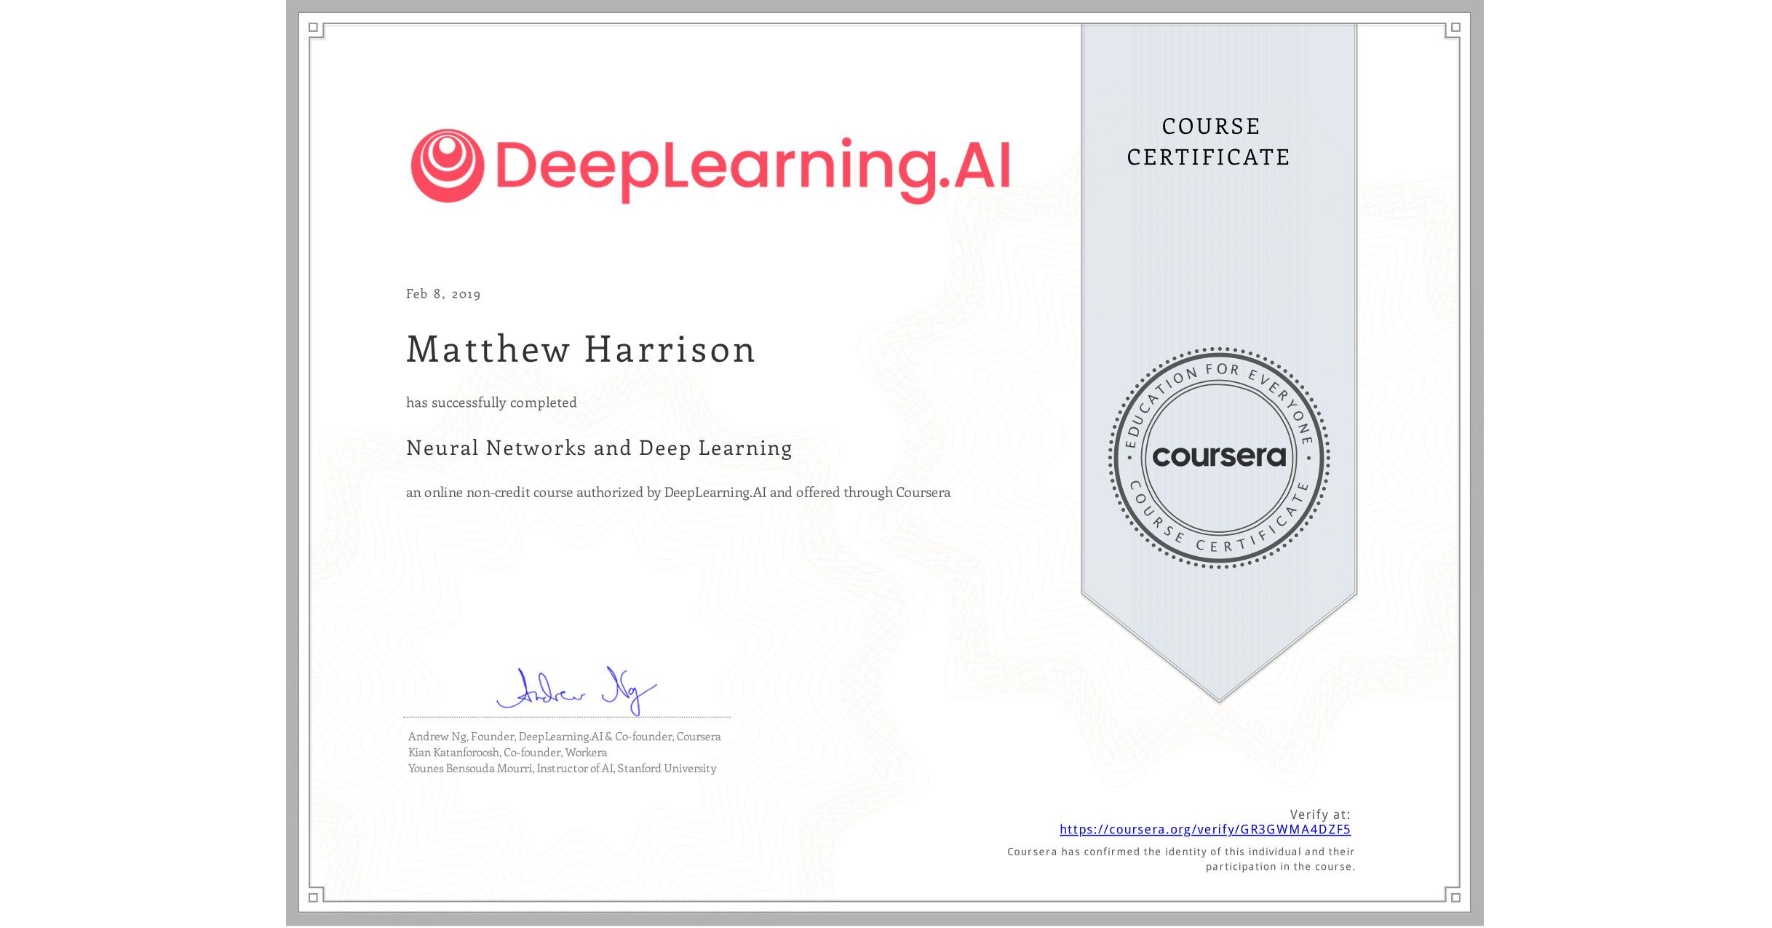 View certificate for Matthew Harrison, Neural Networks and Deep Learning, an online non-credit course authorized by DeepLearning.AI and offered through Coursera